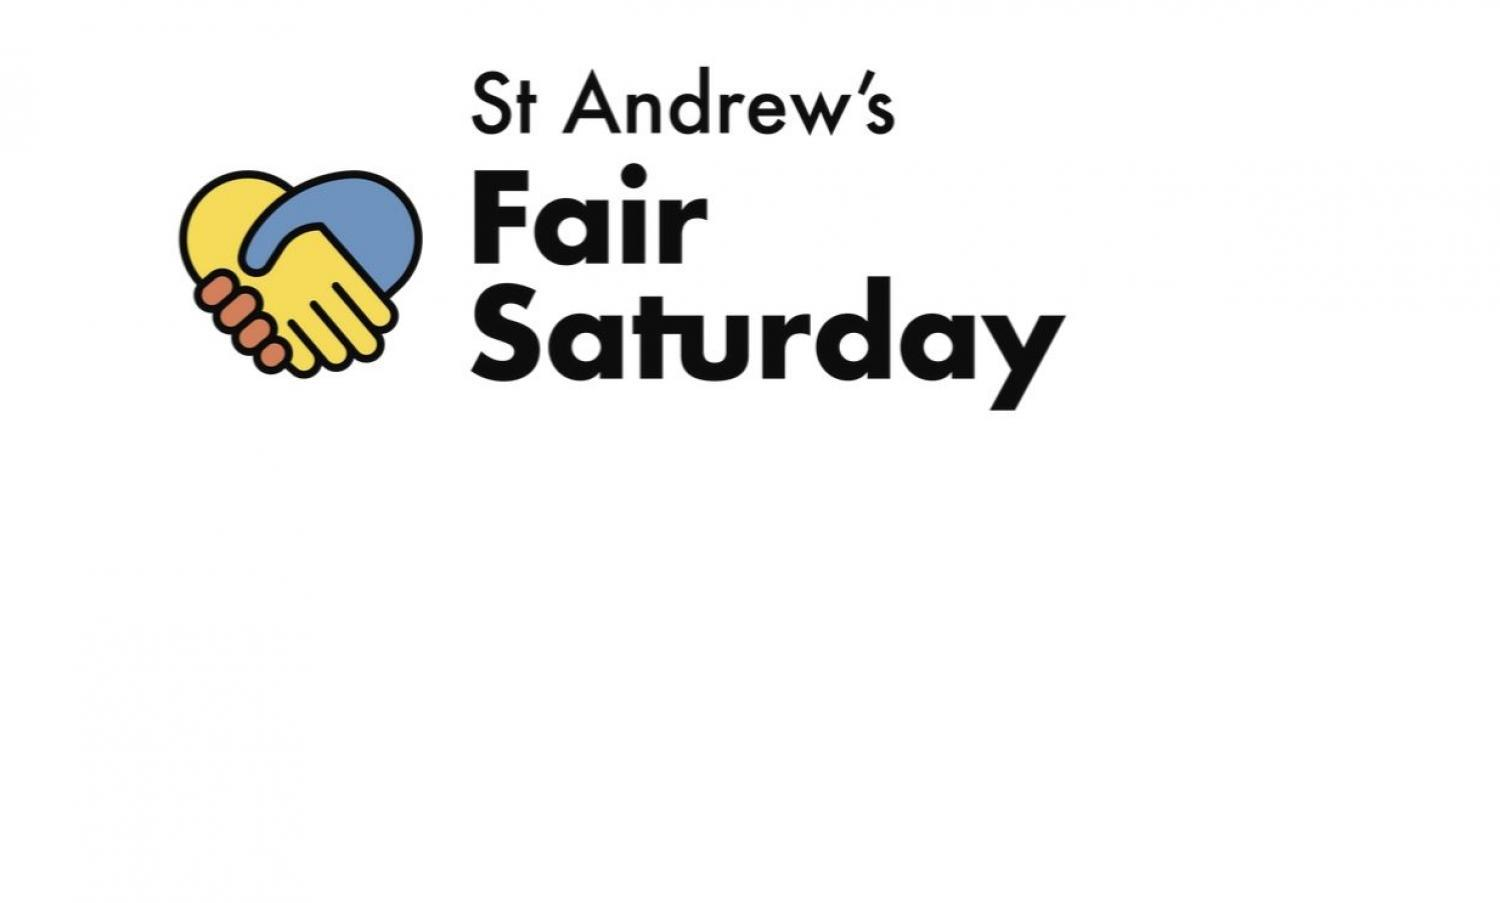 St Andrew's Fair Saturday logo